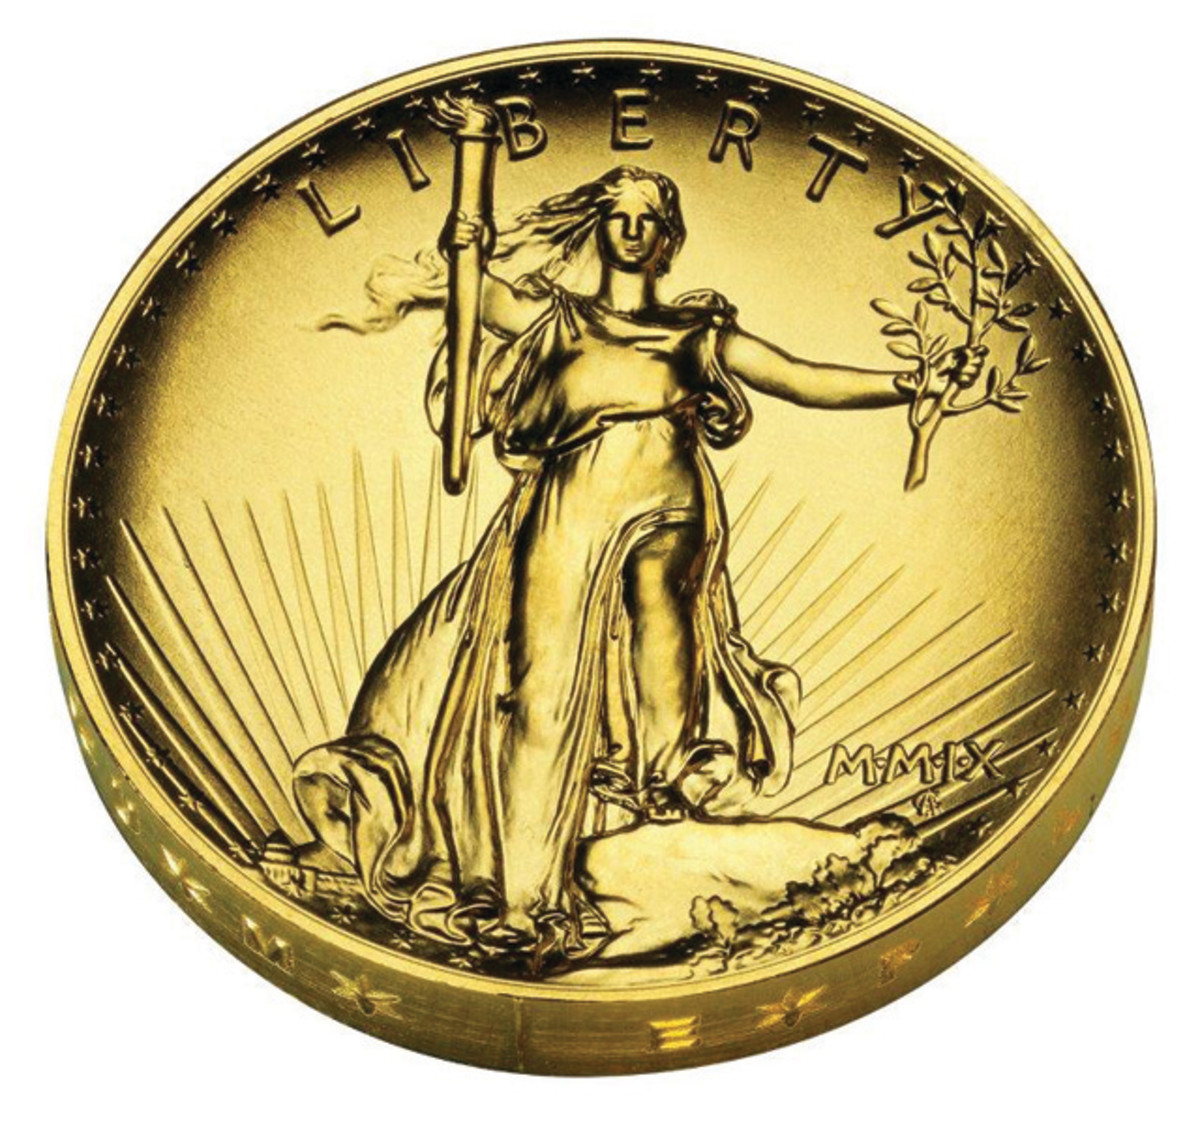 Obverse of the 2009 Ultra High Relief gold coin